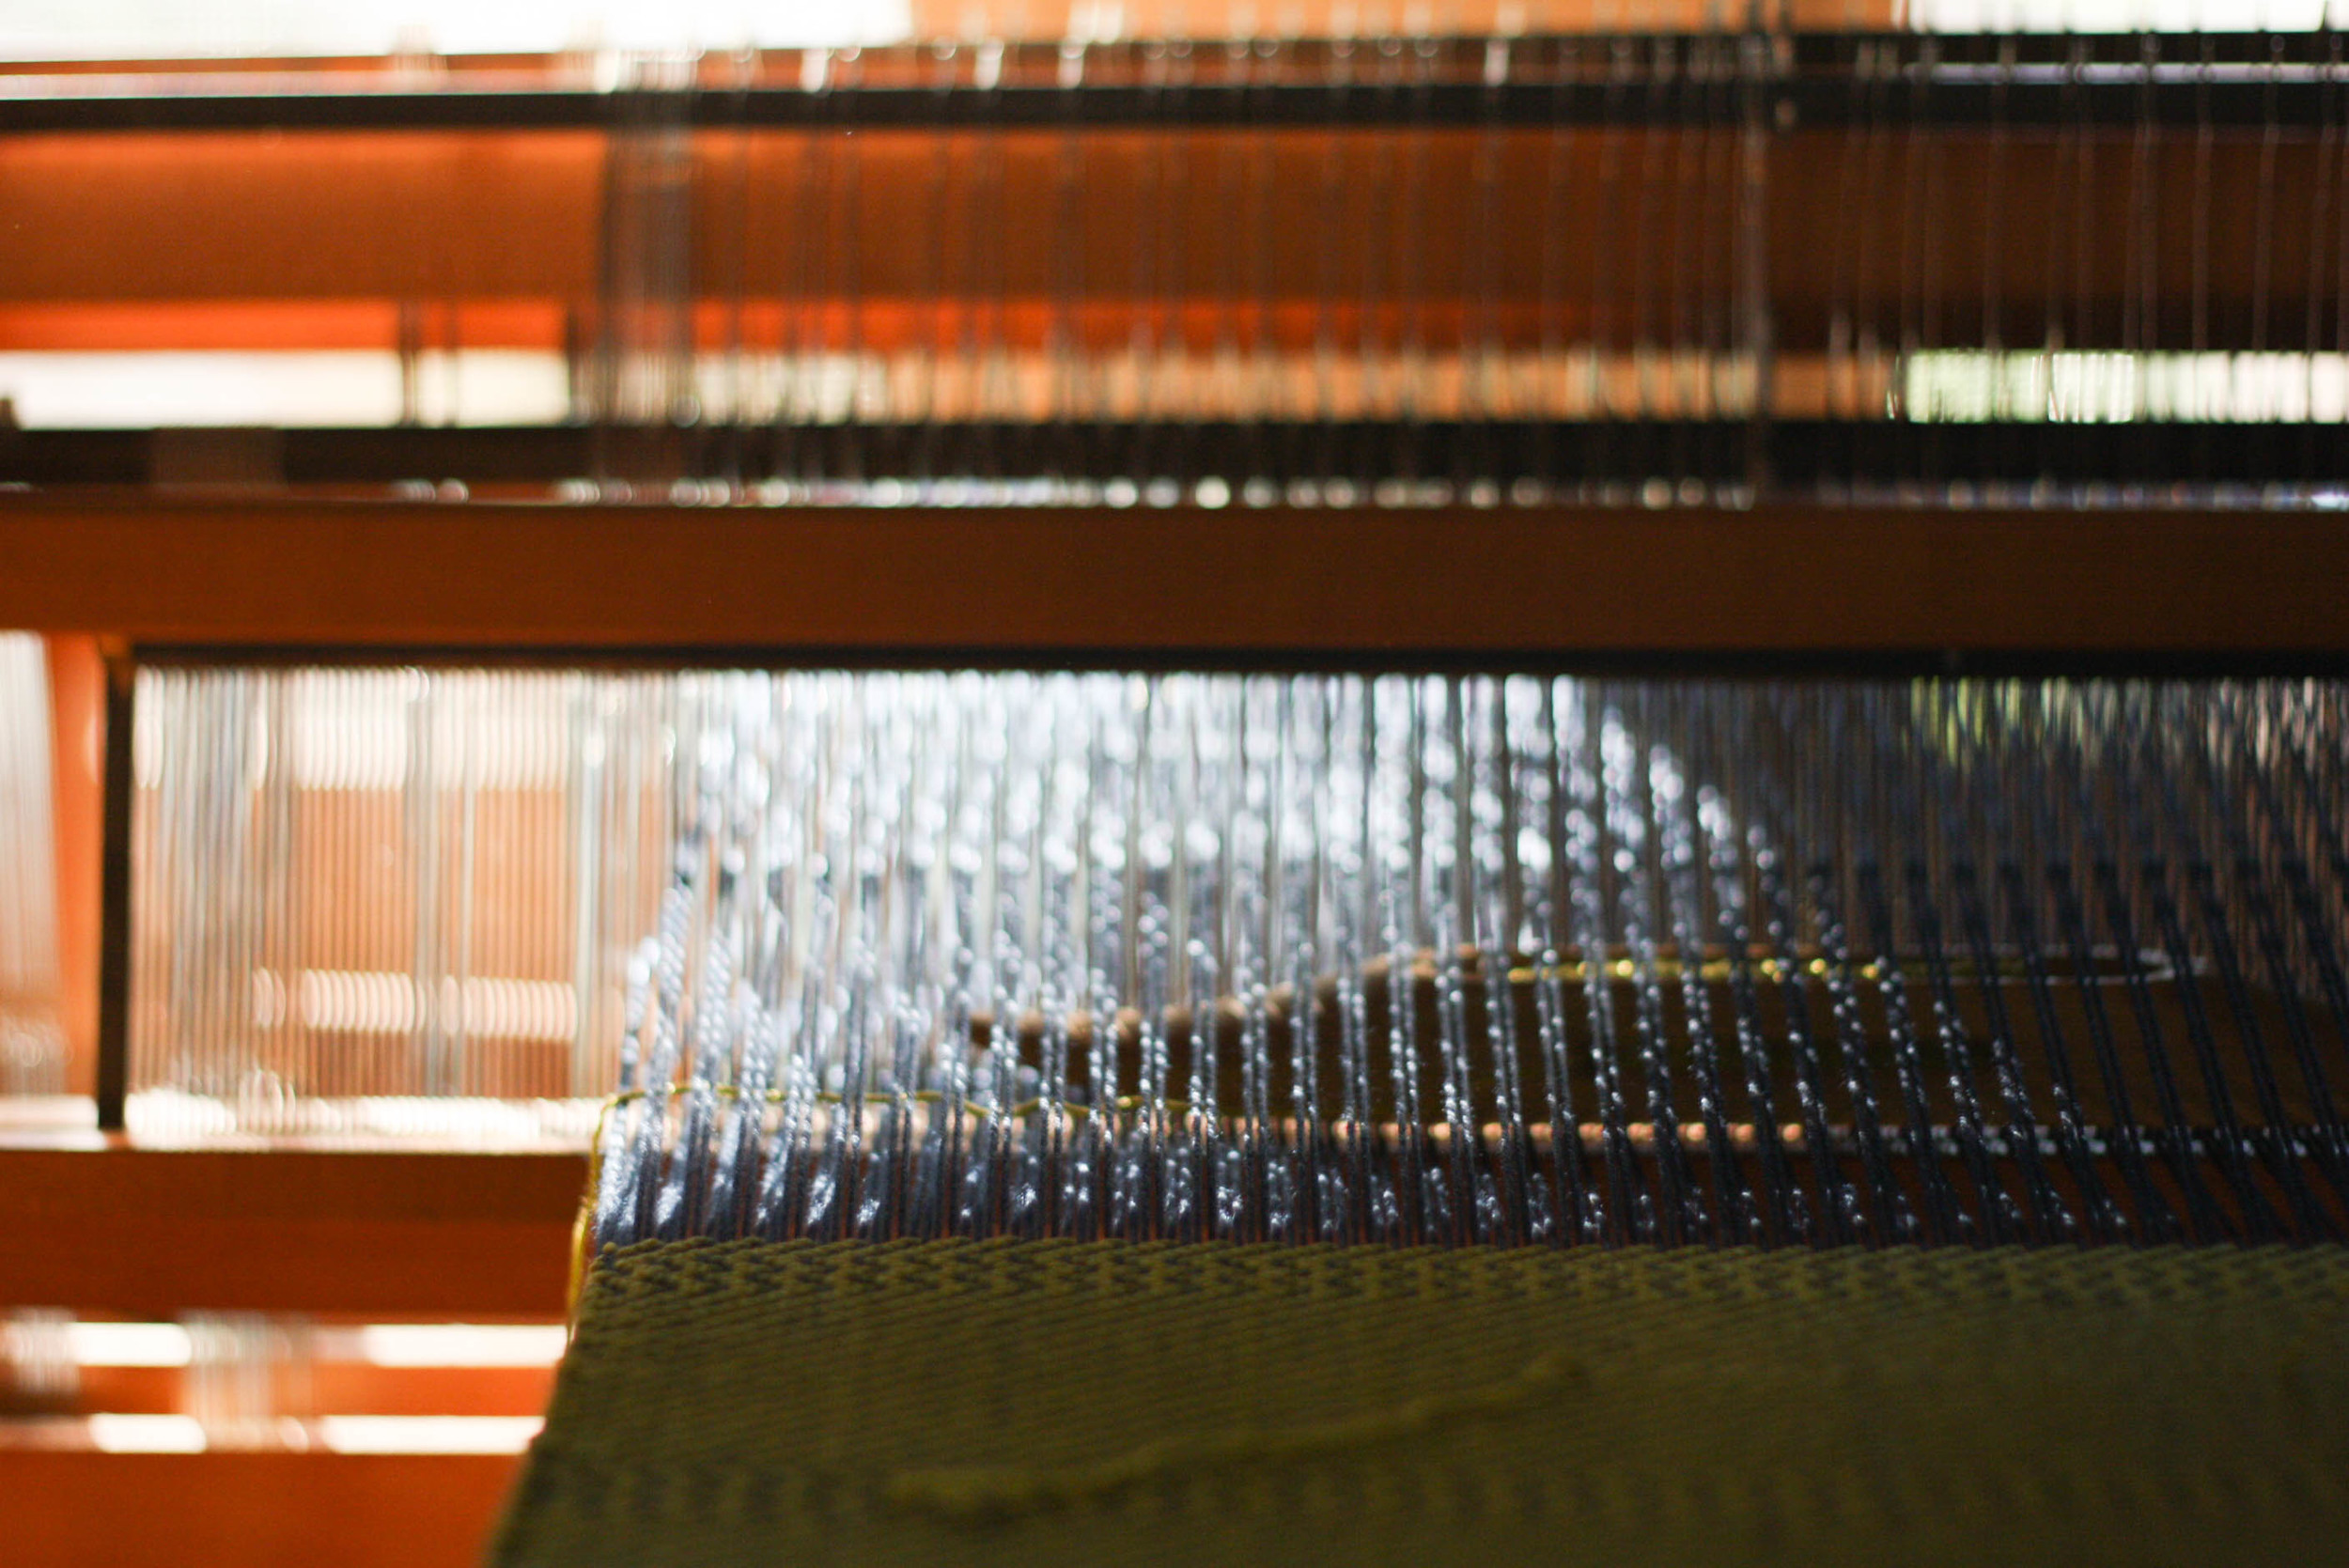 light on loom9.jpg